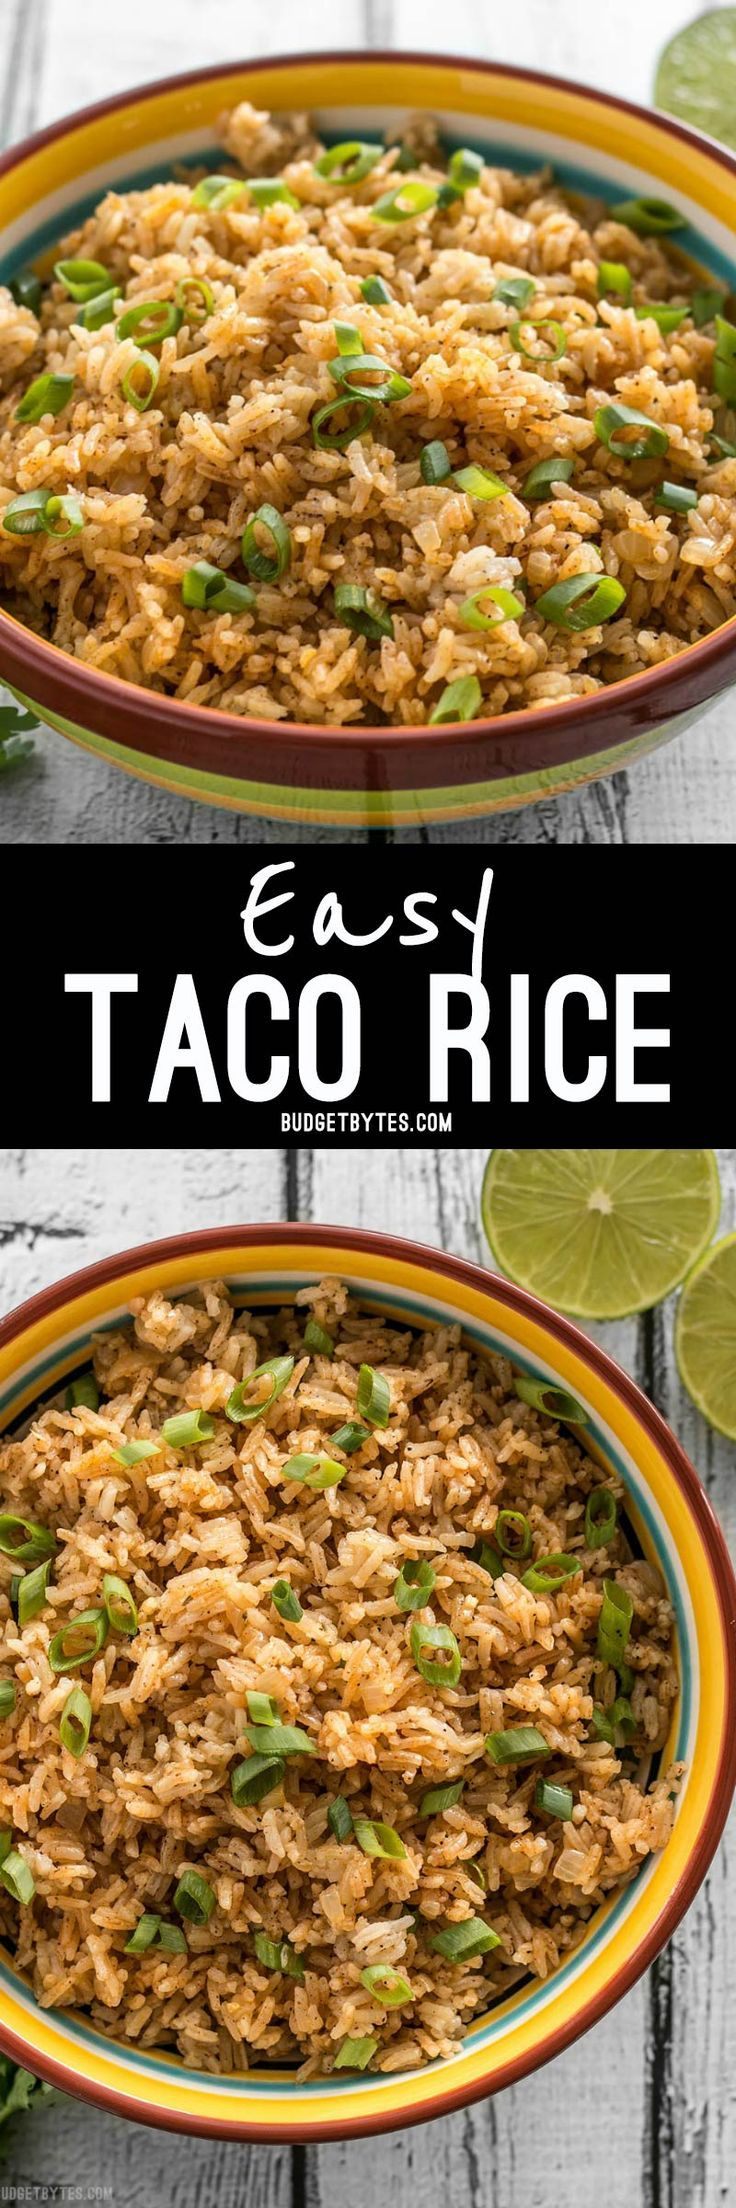 This flavorful Taco Rice is packed full of herbs and spices, but is neutral enough to serve as the base for several different recipes, like bowl meals, burritos, and more!